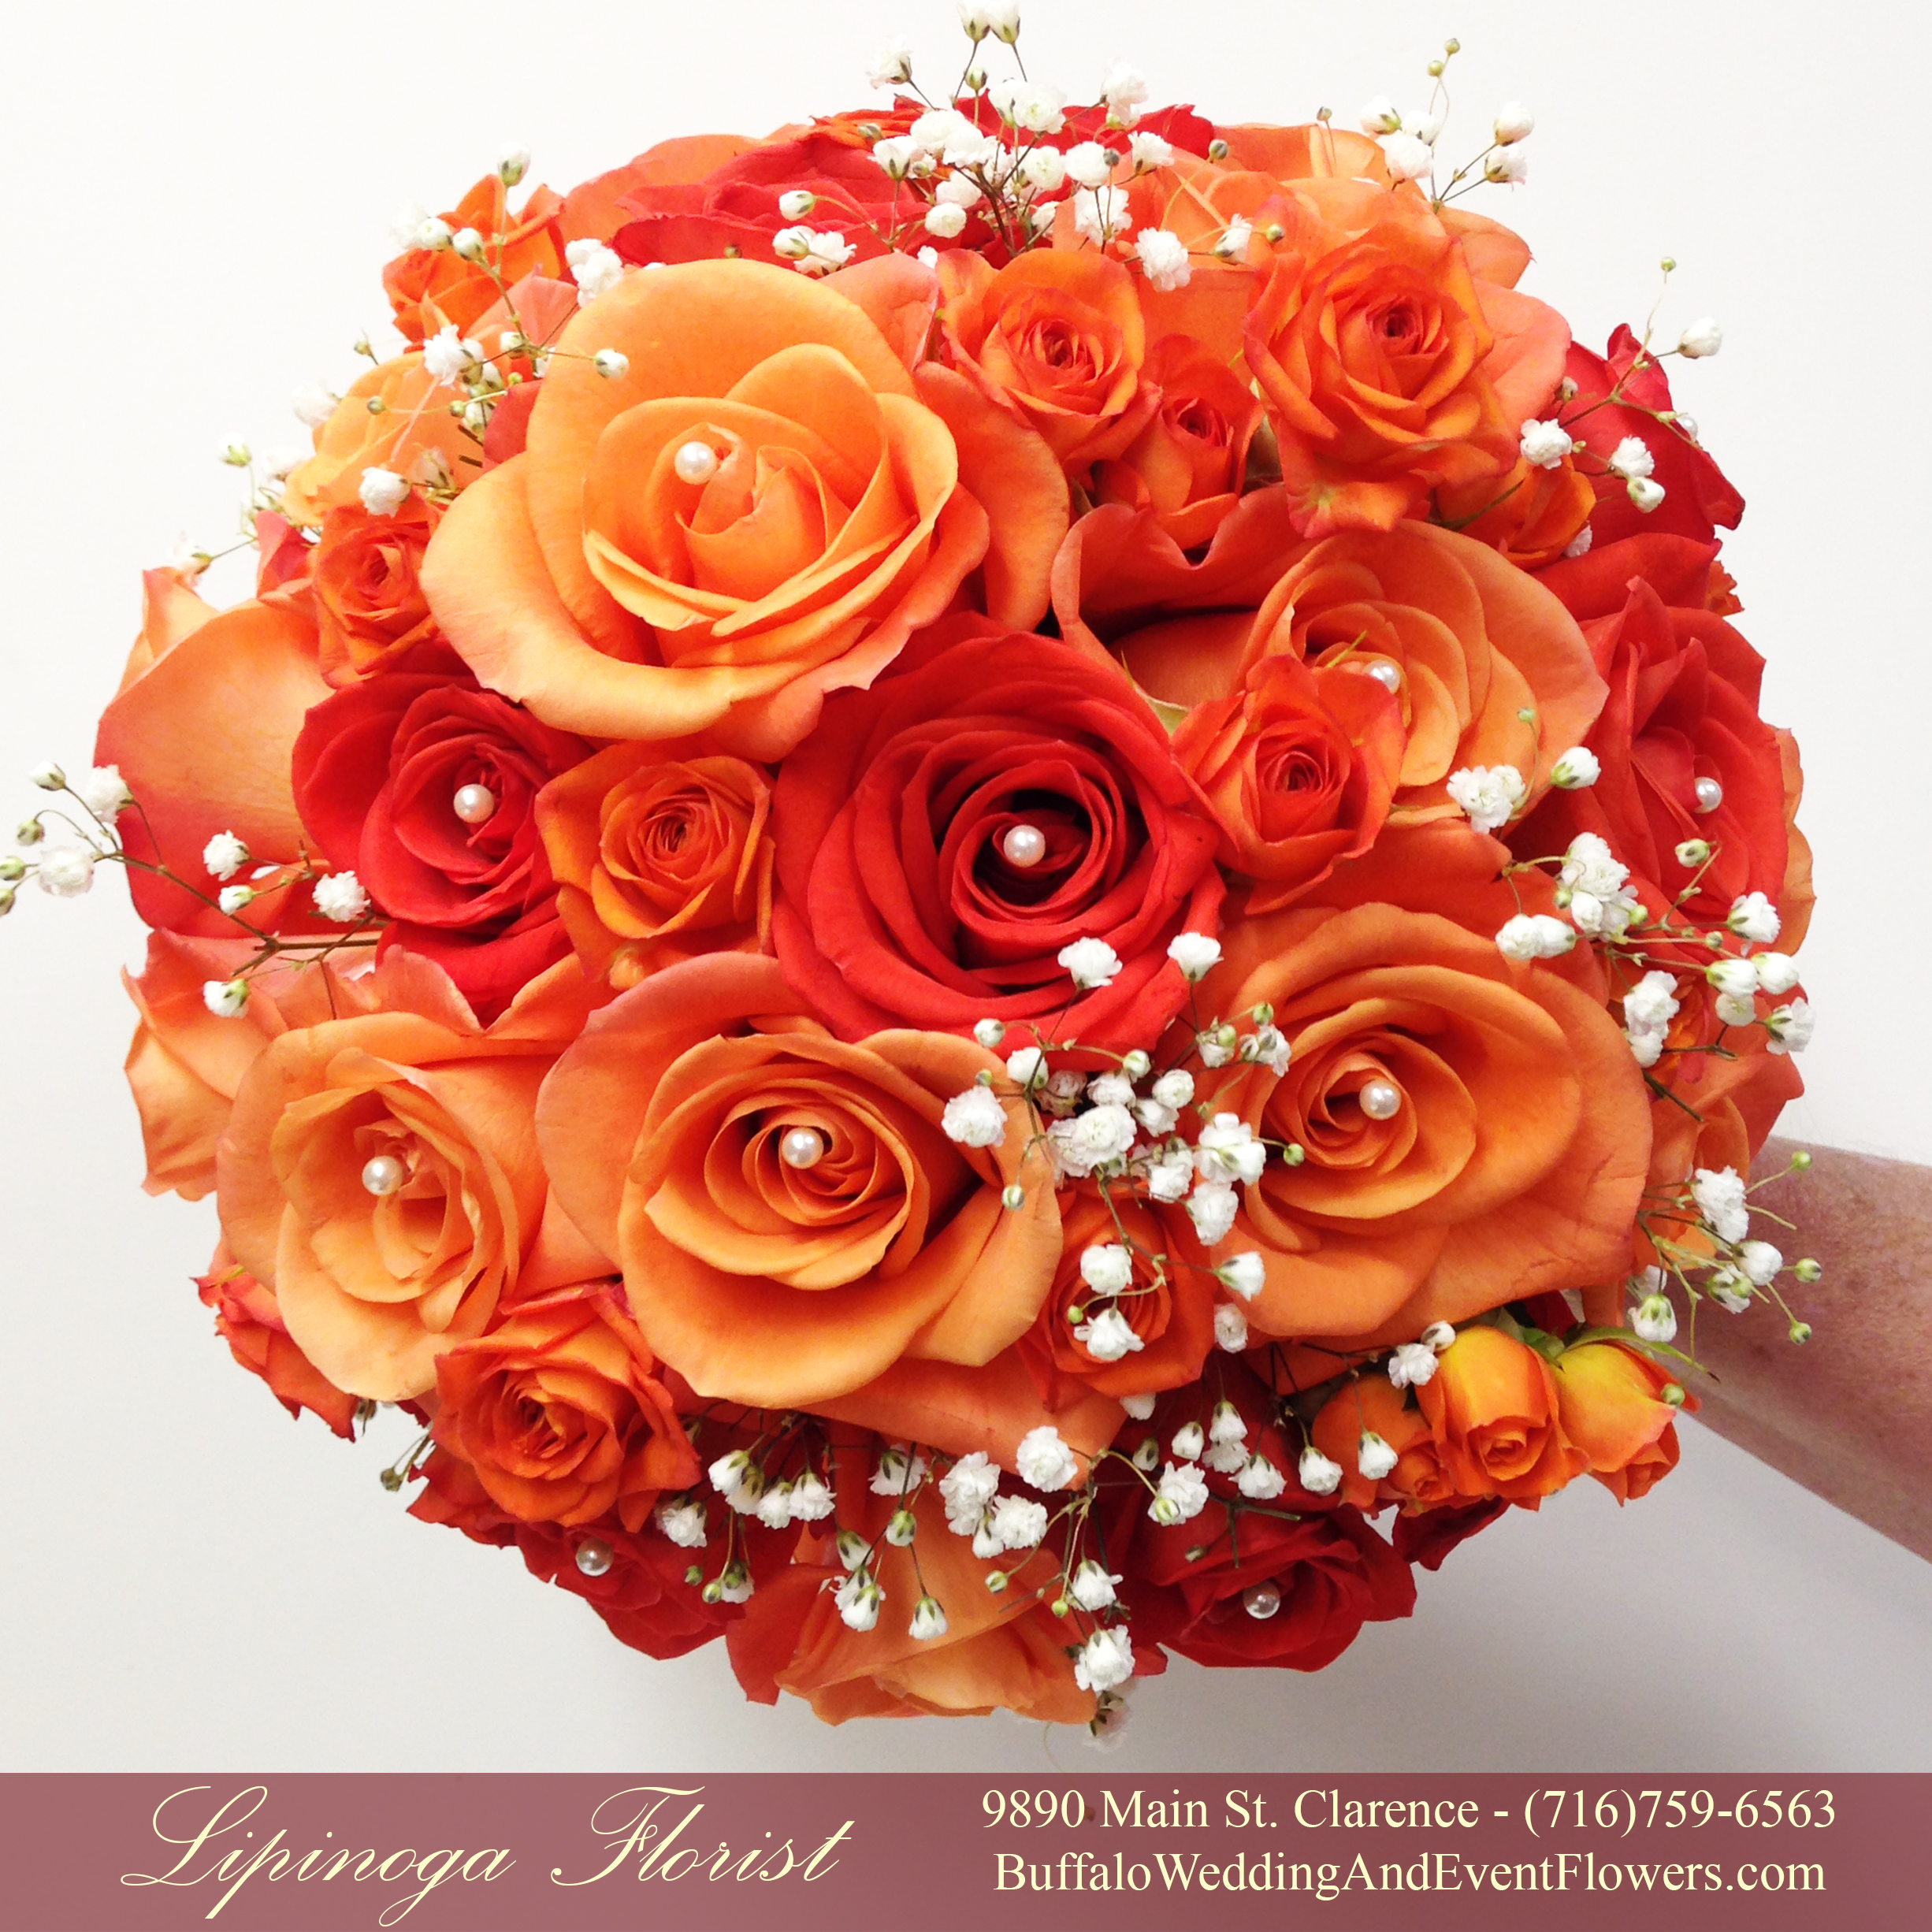 orange wedding flowers buffalo wedding event flowers by lipinoga florist. Black Bedroom Furniture Sets. Home Design Ideas